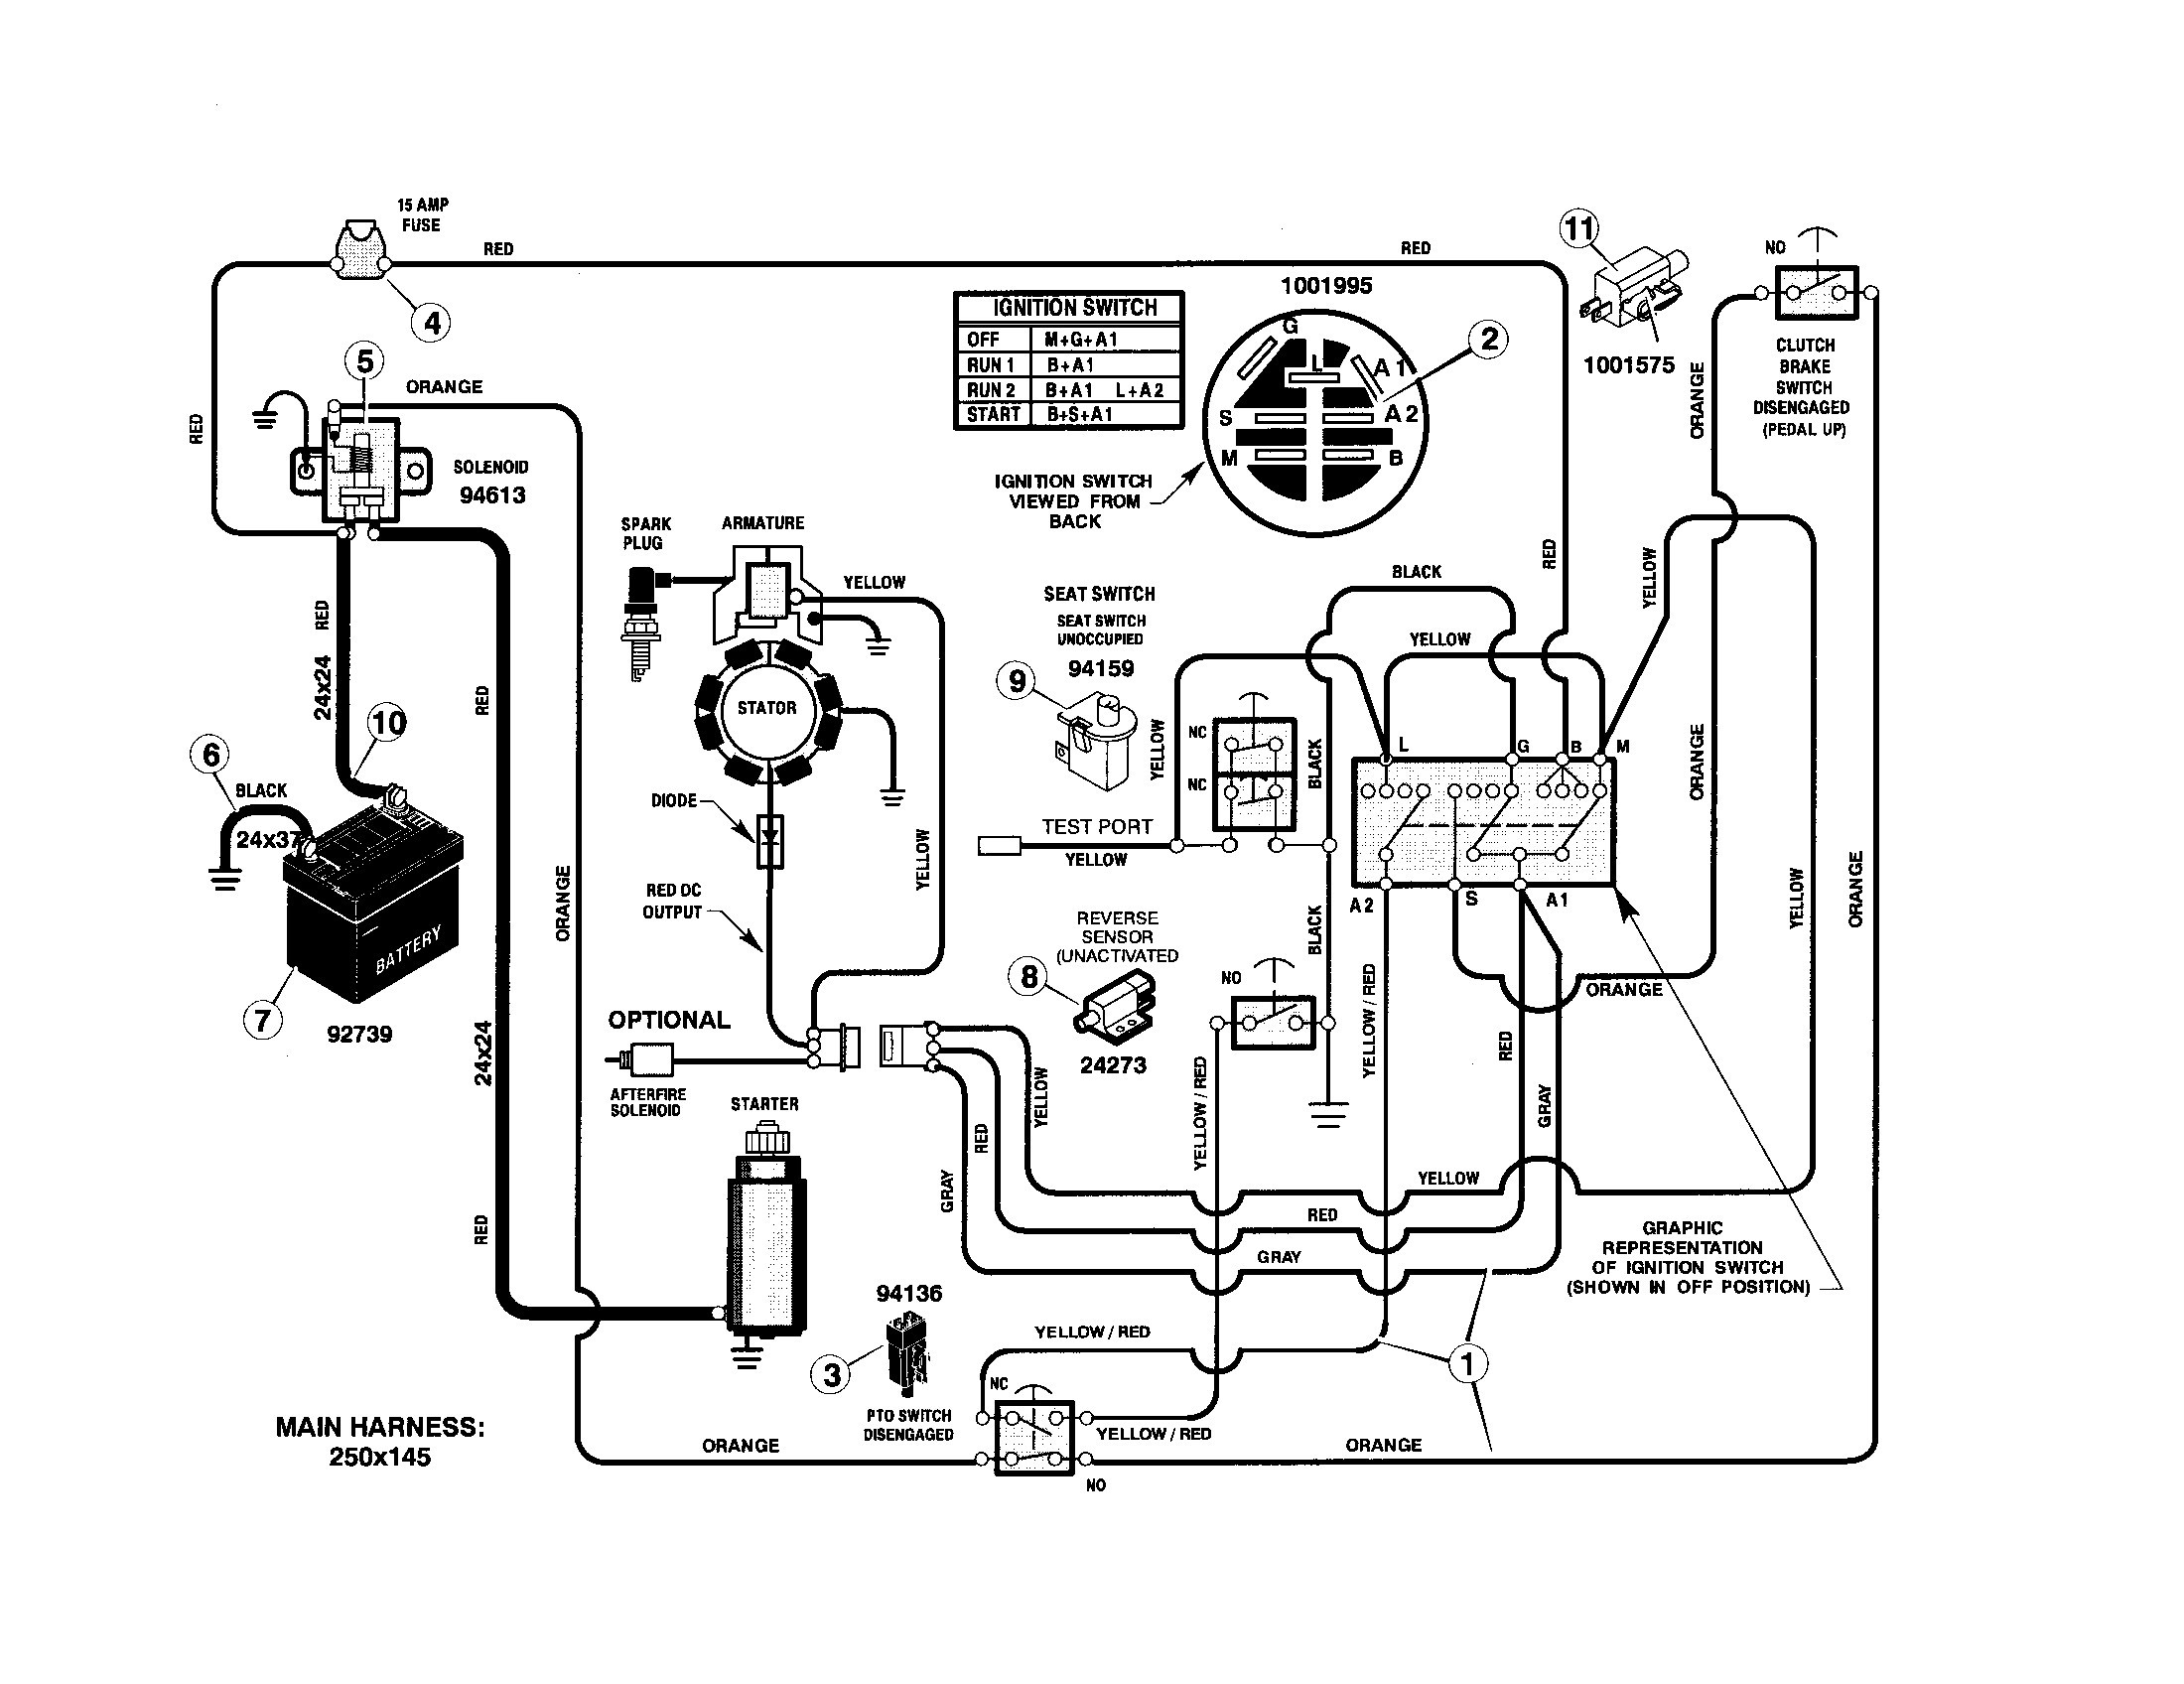 mtd riding lawn mower wiring diagram toro riding lawn mower wiring diagram